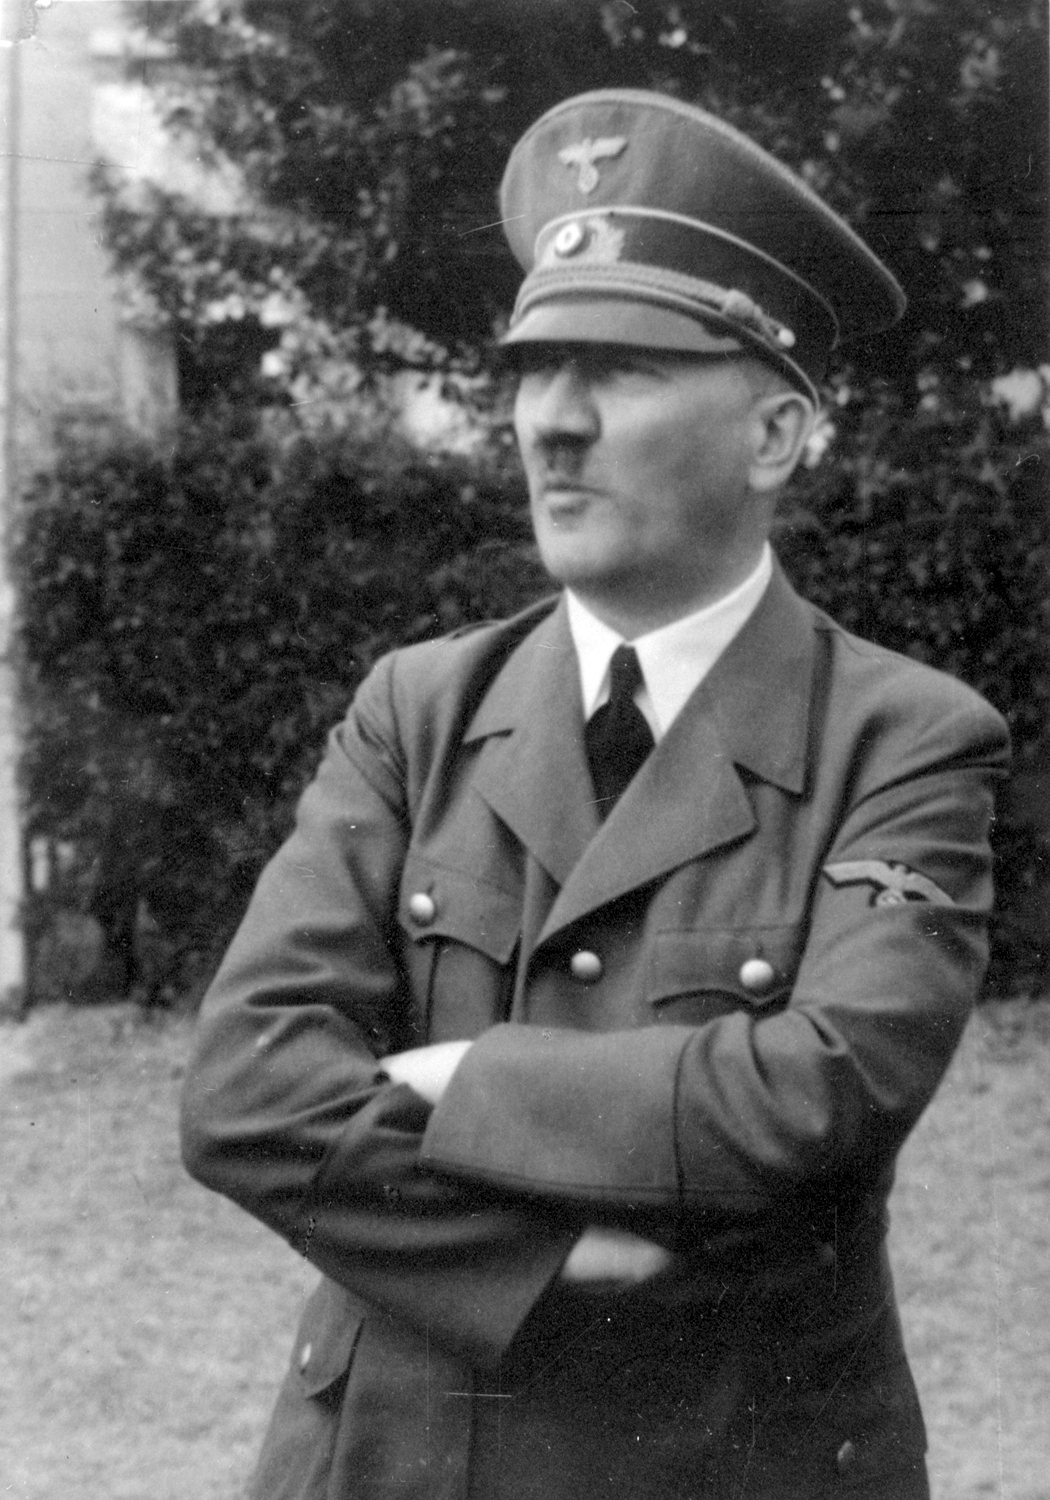 Adolf Hitler in Führerhauptquartier Wolfsschlucht at the end of the campaign against France, from Eva Braun's albums